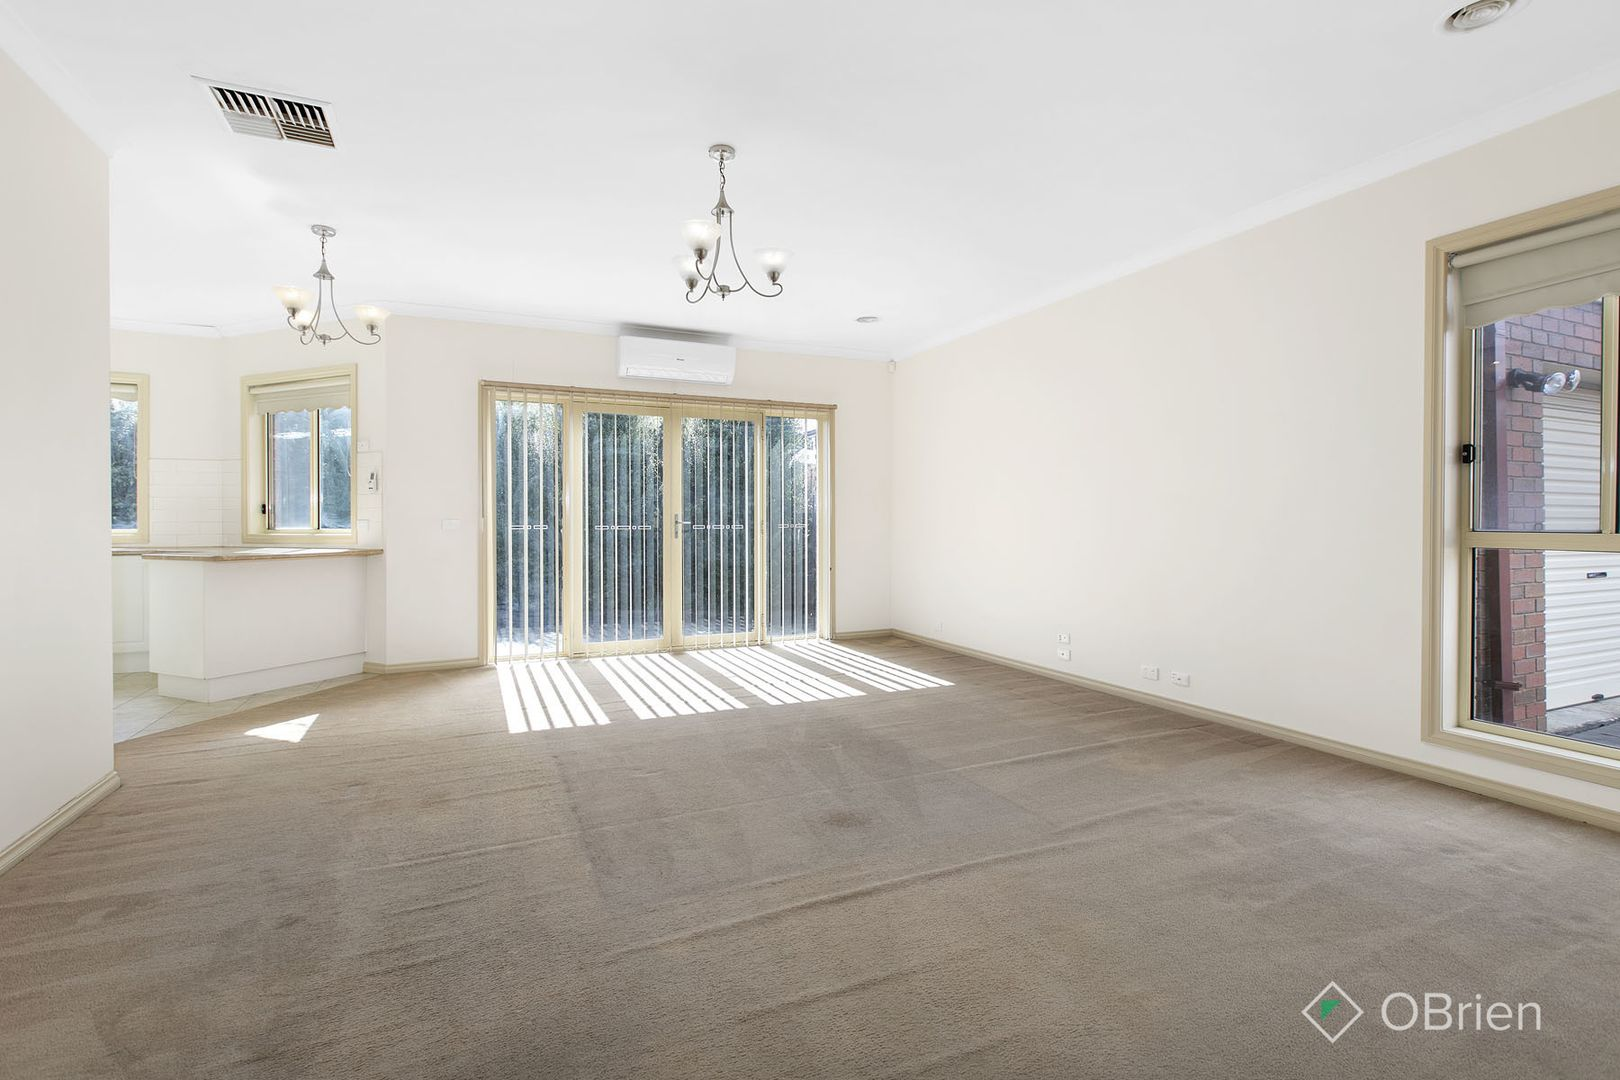 2/4 Hyperno Court, Keilor Downs VIC 3038, Image 2